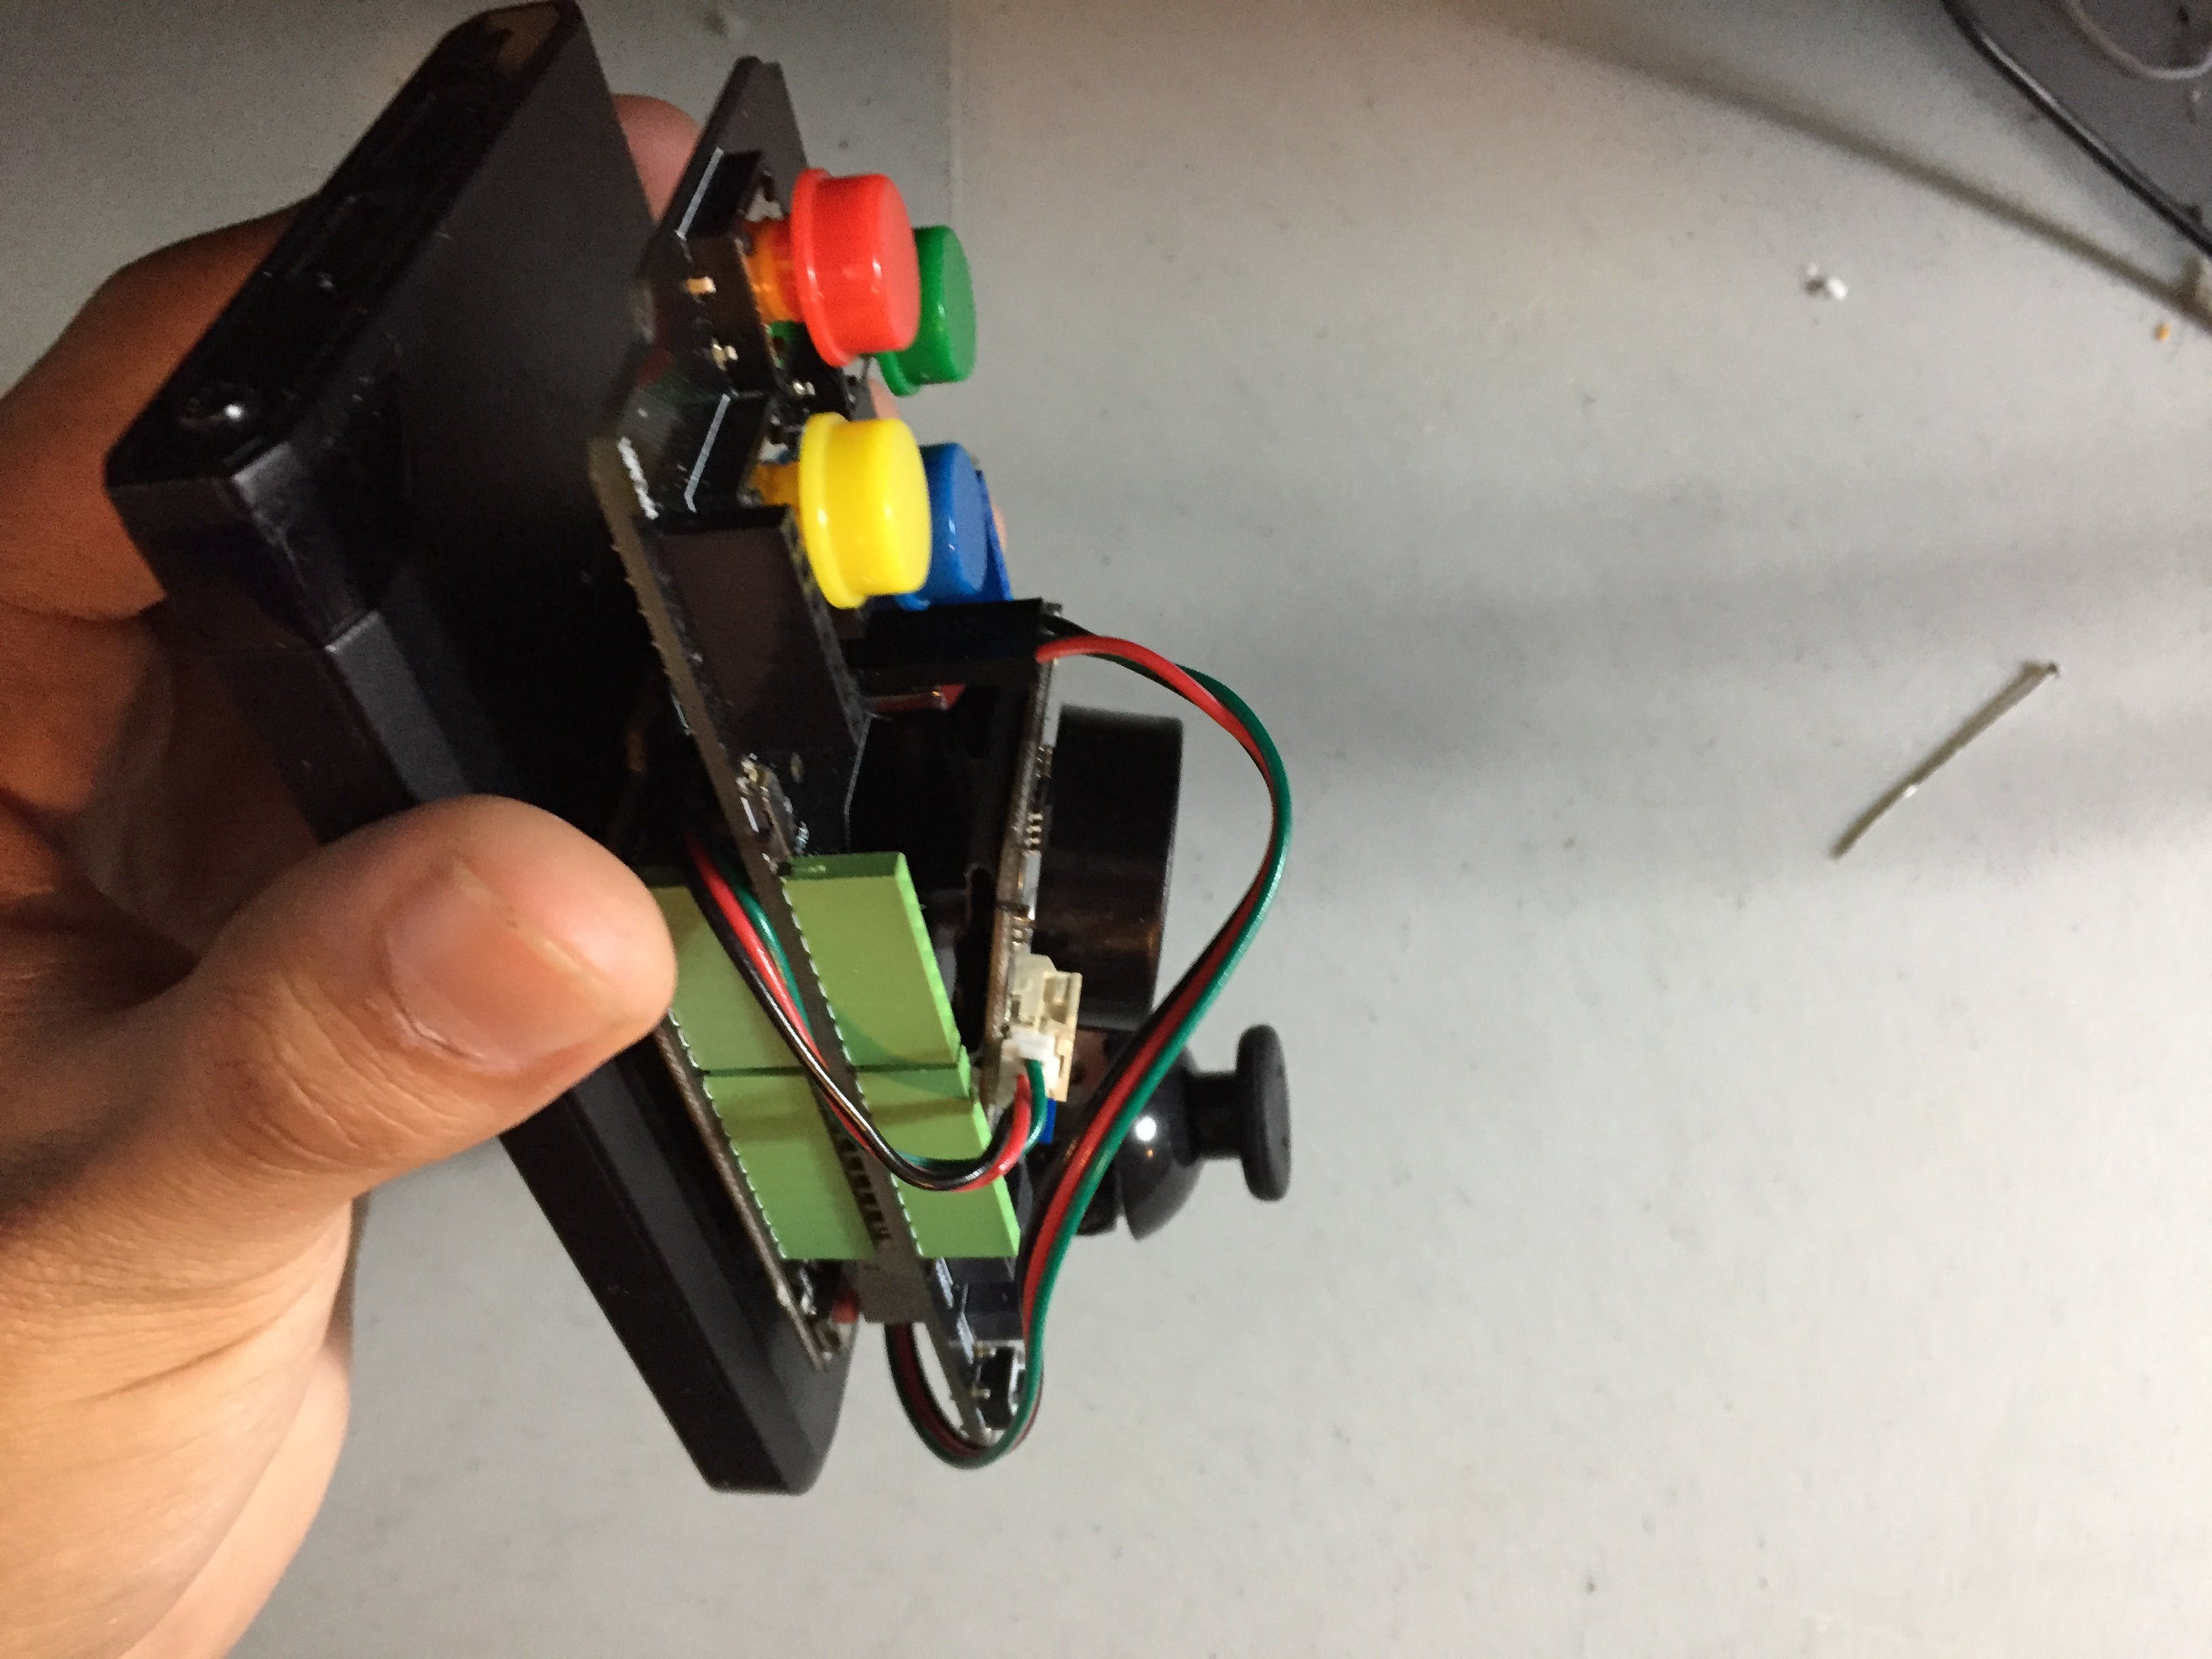 Stuck to Battery for Improved Ergonomics